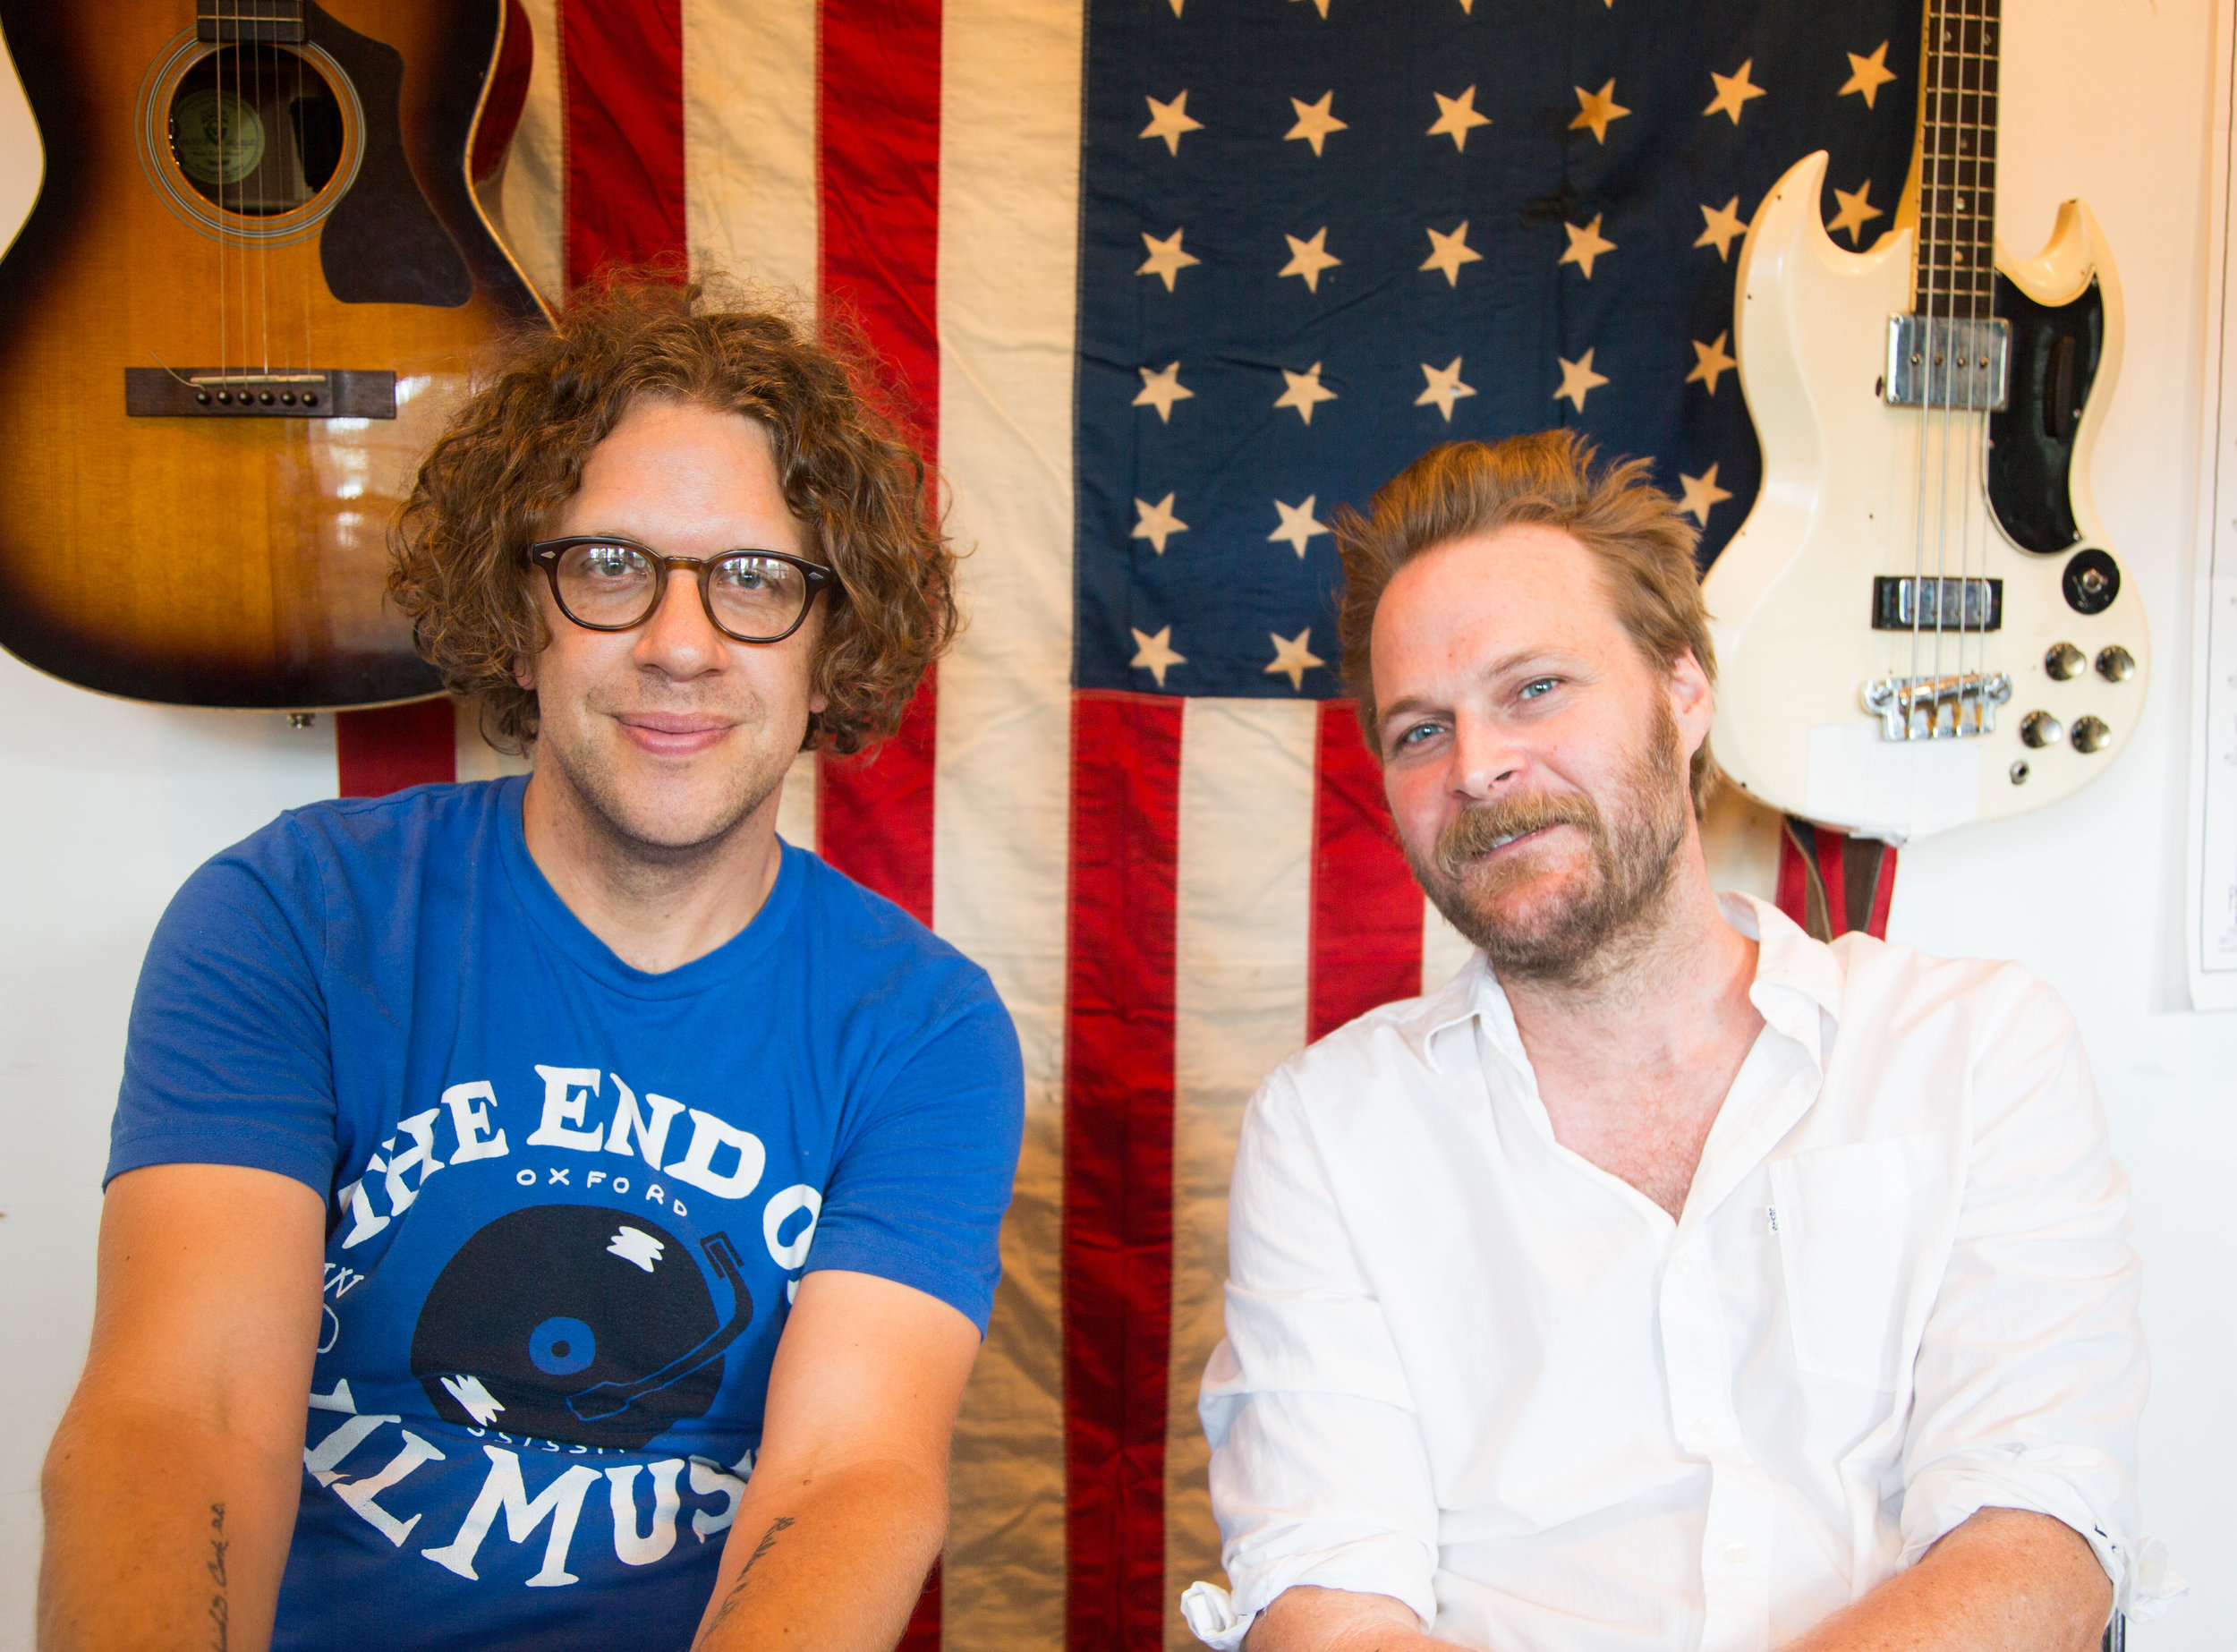 Two men in front of American flag and two guitars